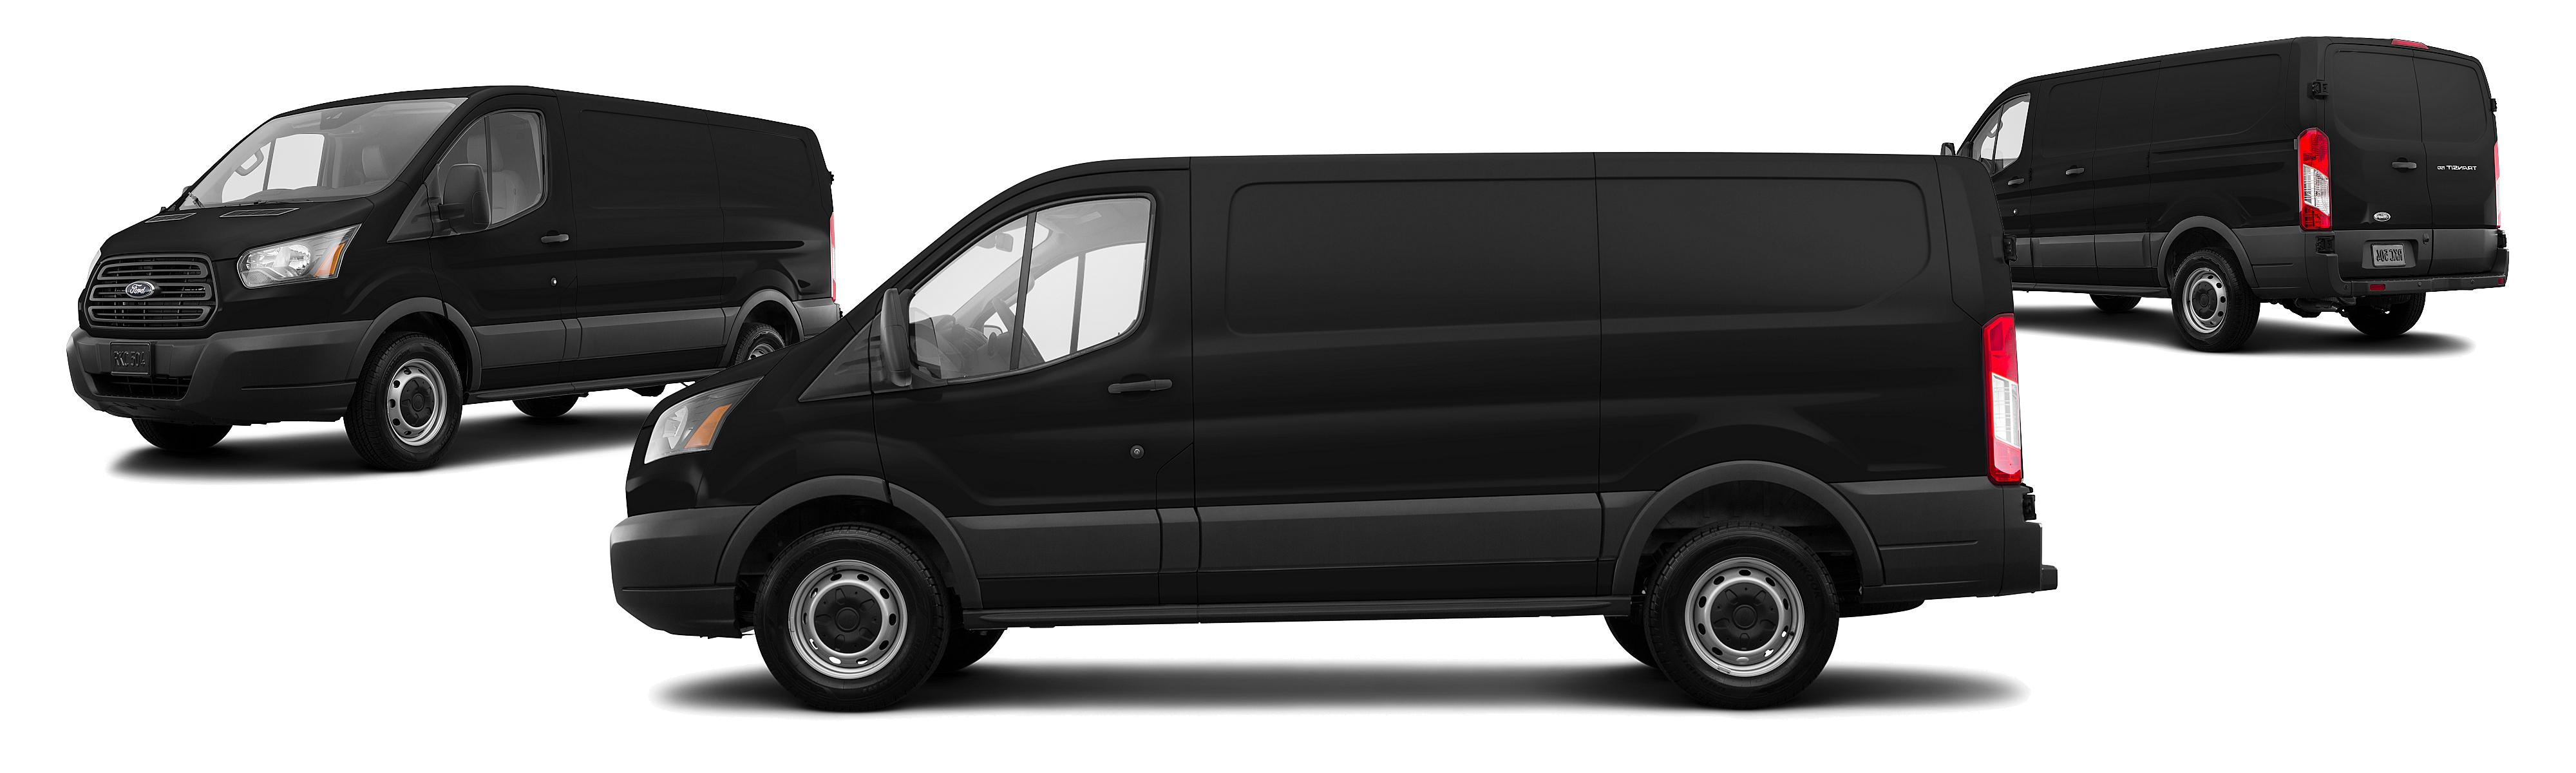 Seattle Used Cars >> 2017 Ford Transit-150 Cargo Van Configurations | Best new cars for 2018